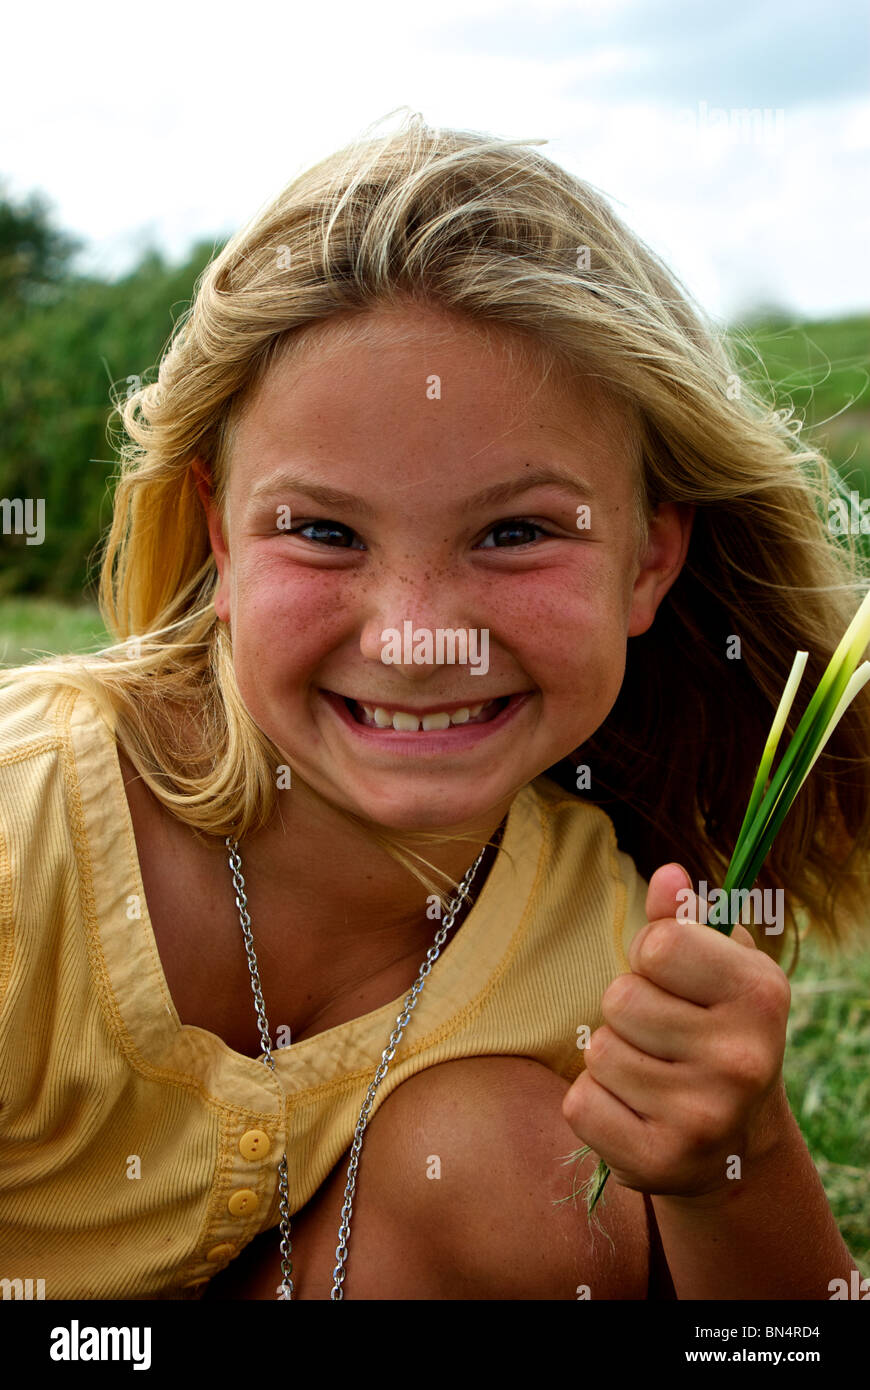 Young pretty smiling blond freckle faced Louisiana girl holding marsh plant stems at Welch's Airboat Tours and Alligator Stock Photo